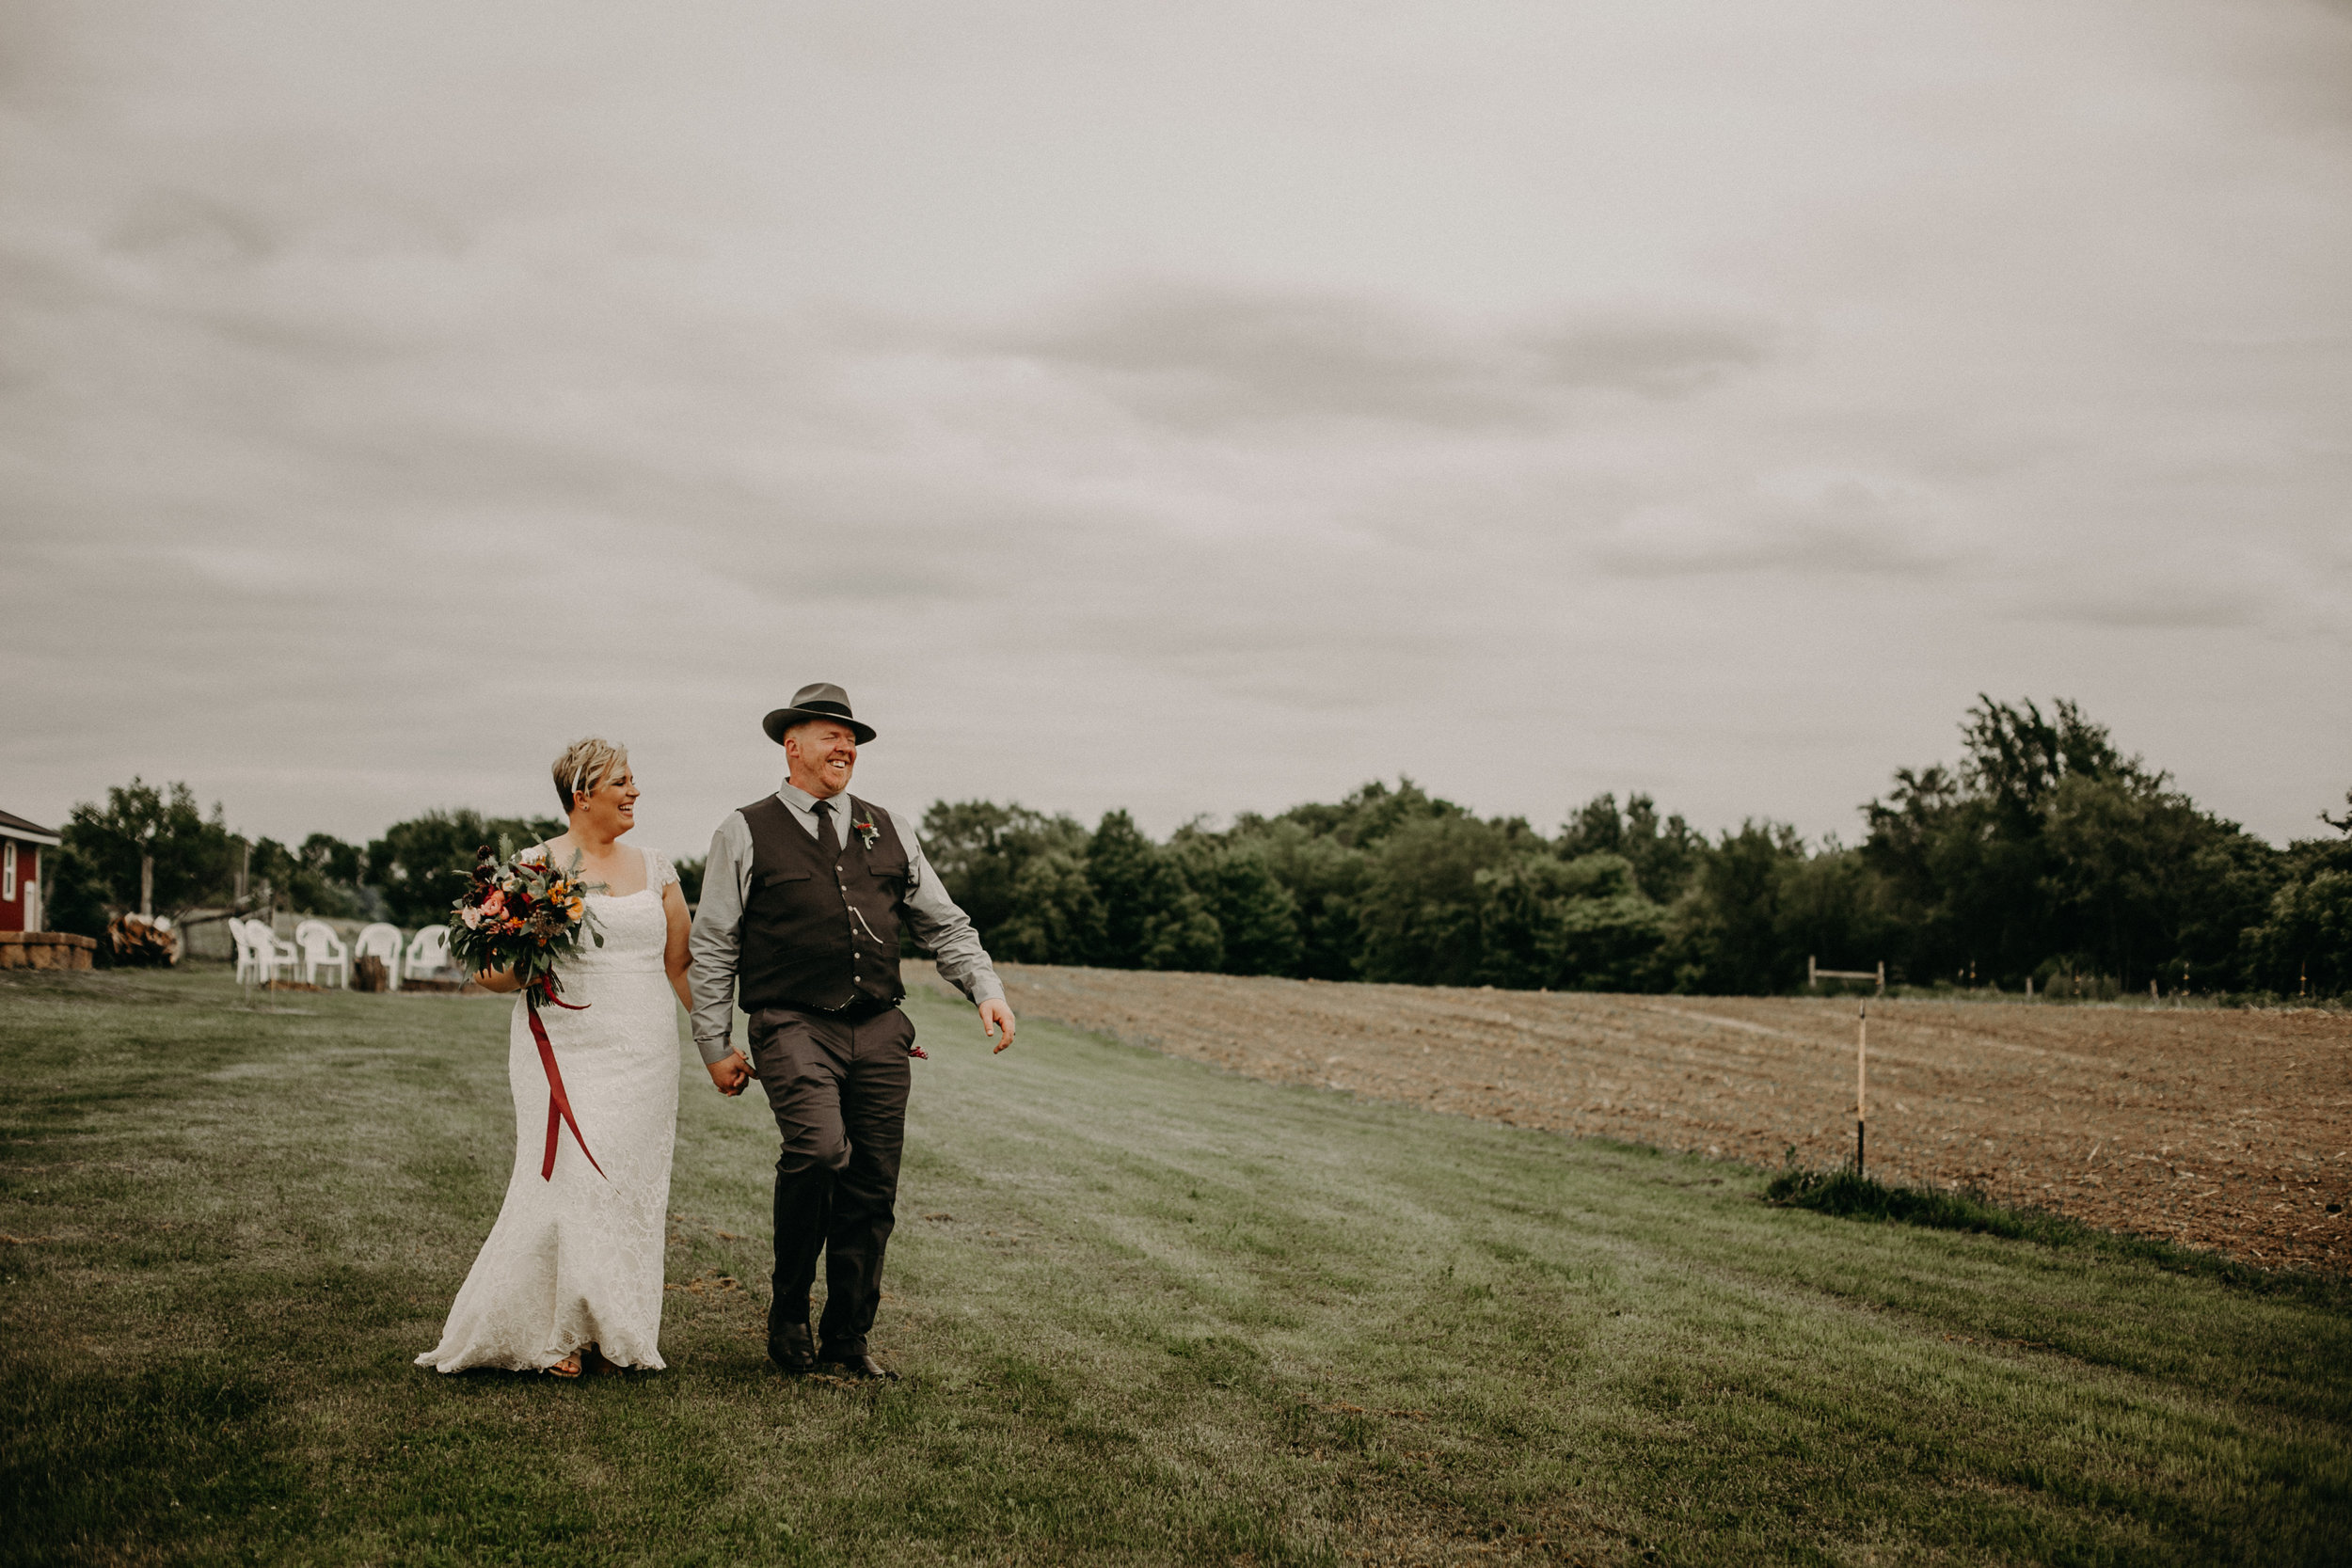 Andrea Wagner Photography provides wedding day photography in Ellsworth WI at Jean Acres Barn